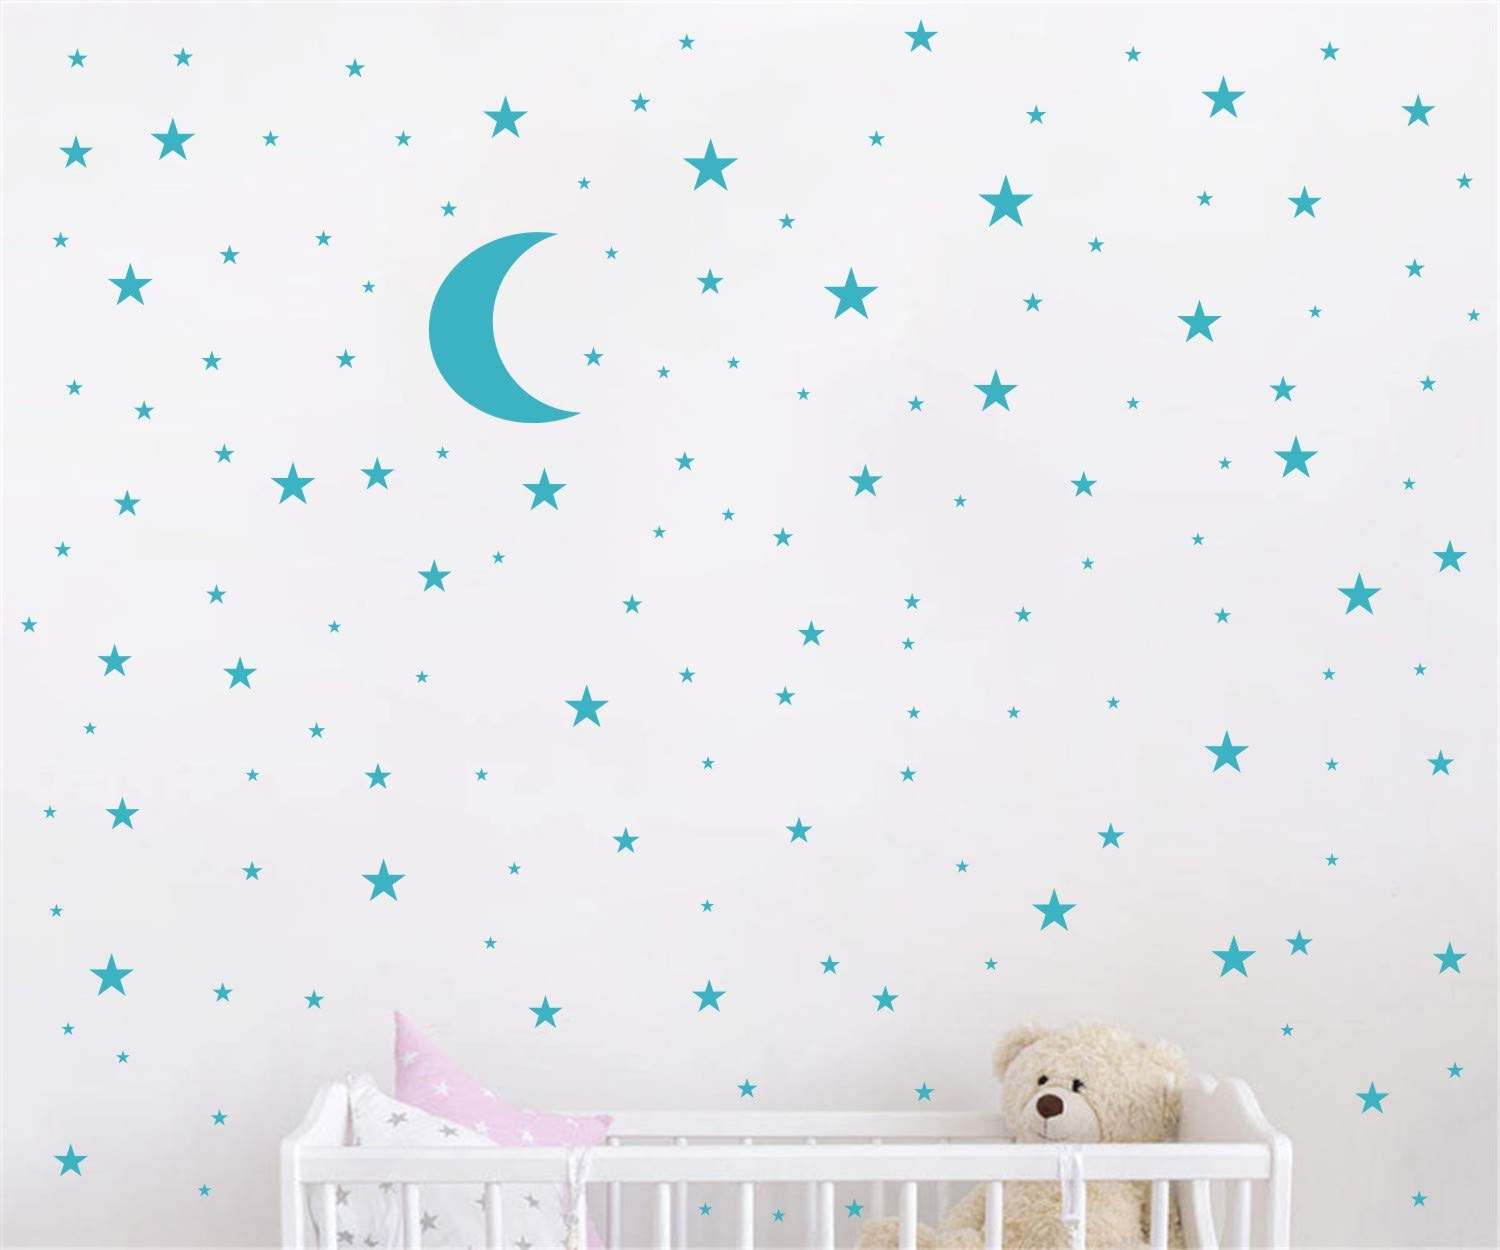 Moon and Stars Wall Decal Vinyl Sticker for Kids Boy Girls Baby Room Decoration Good Night Nursery Wall Decor Home House Bedroom Design YMX16 (Teal)